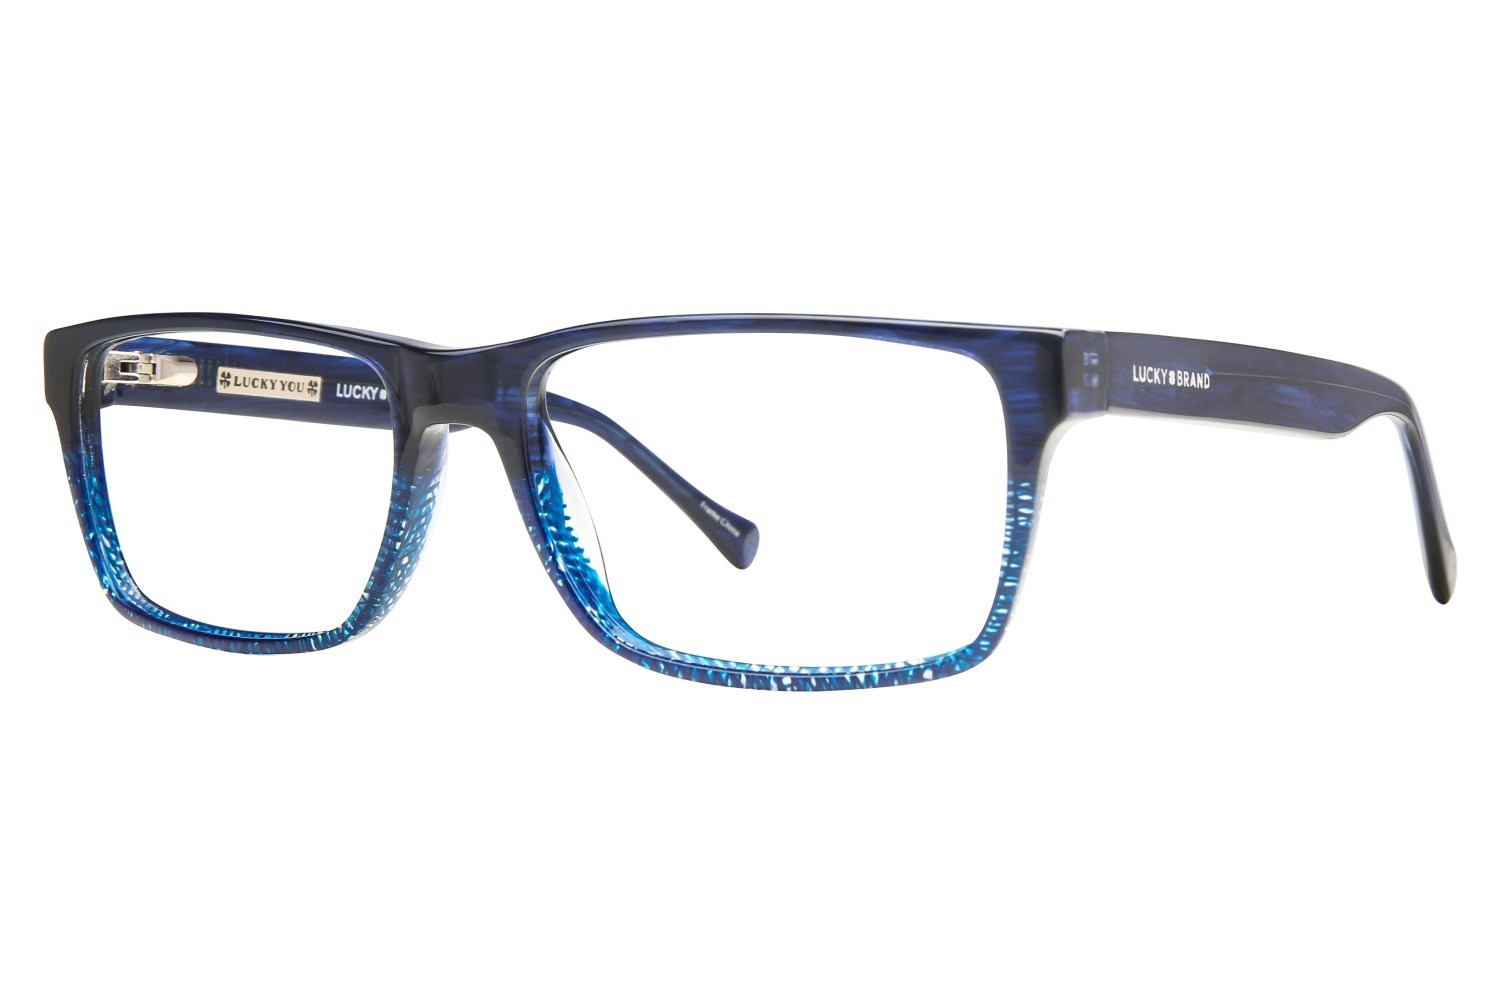 lucky-d401-prescription-eyeglasses